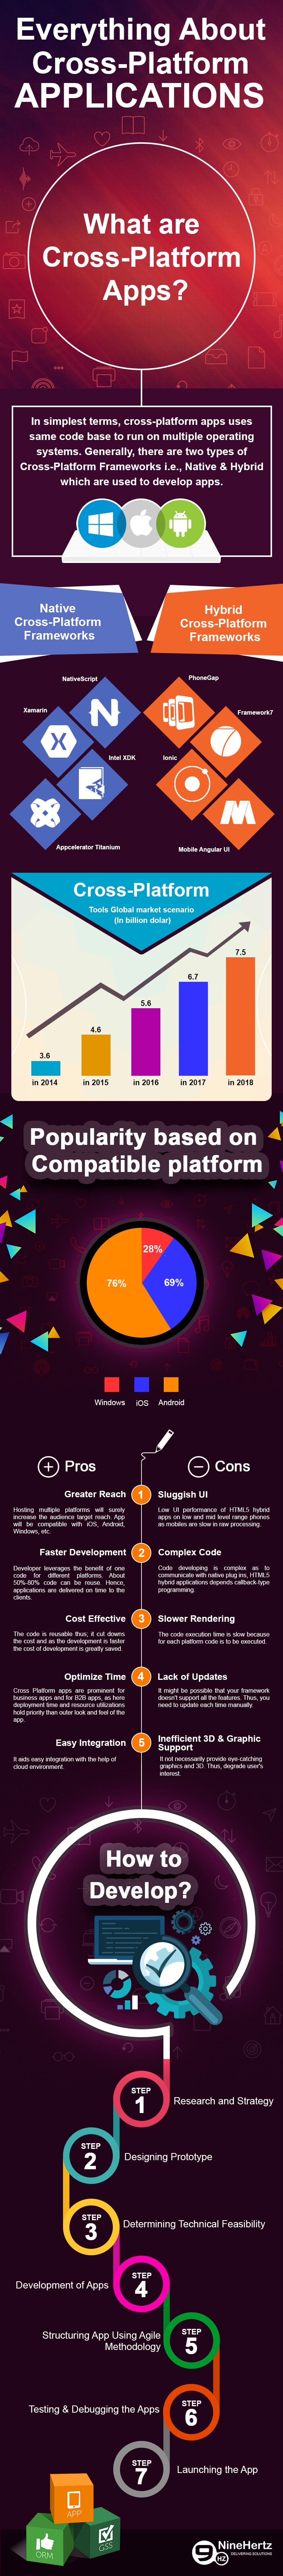 cross platform apps infographic